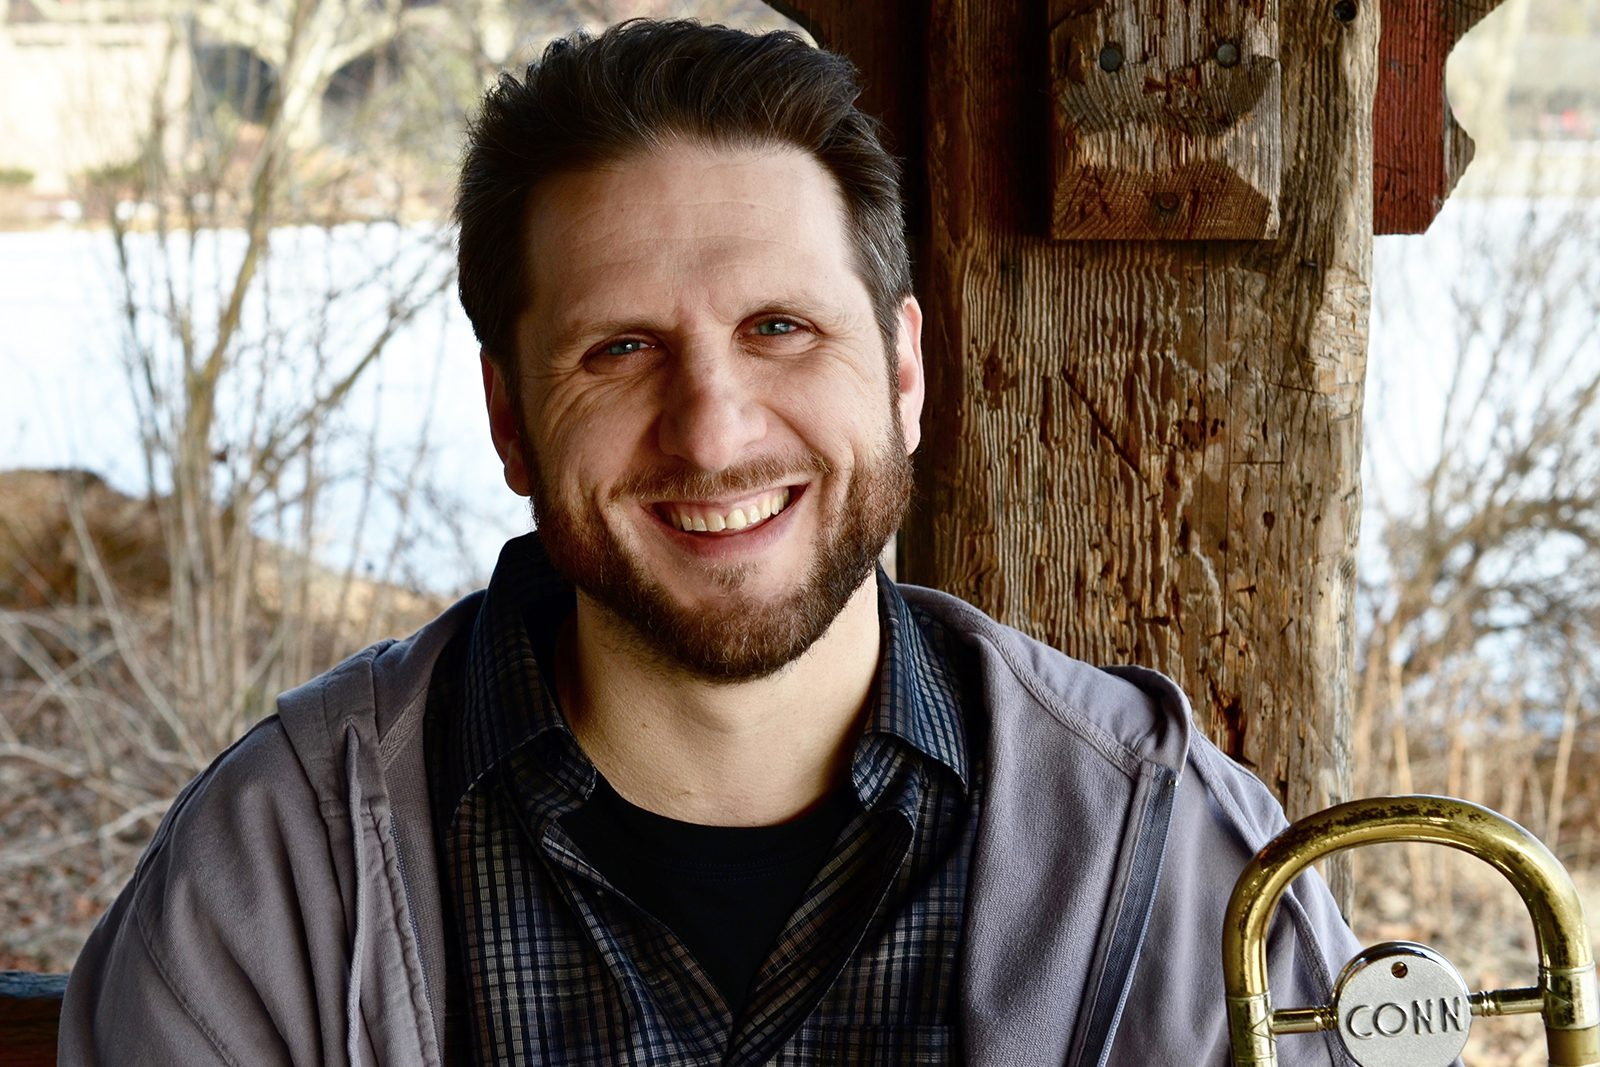 Portrait of St. Olaf jazz professor and conductor JC Sanford with his trombone outside near a wooden post, trees, and a river.